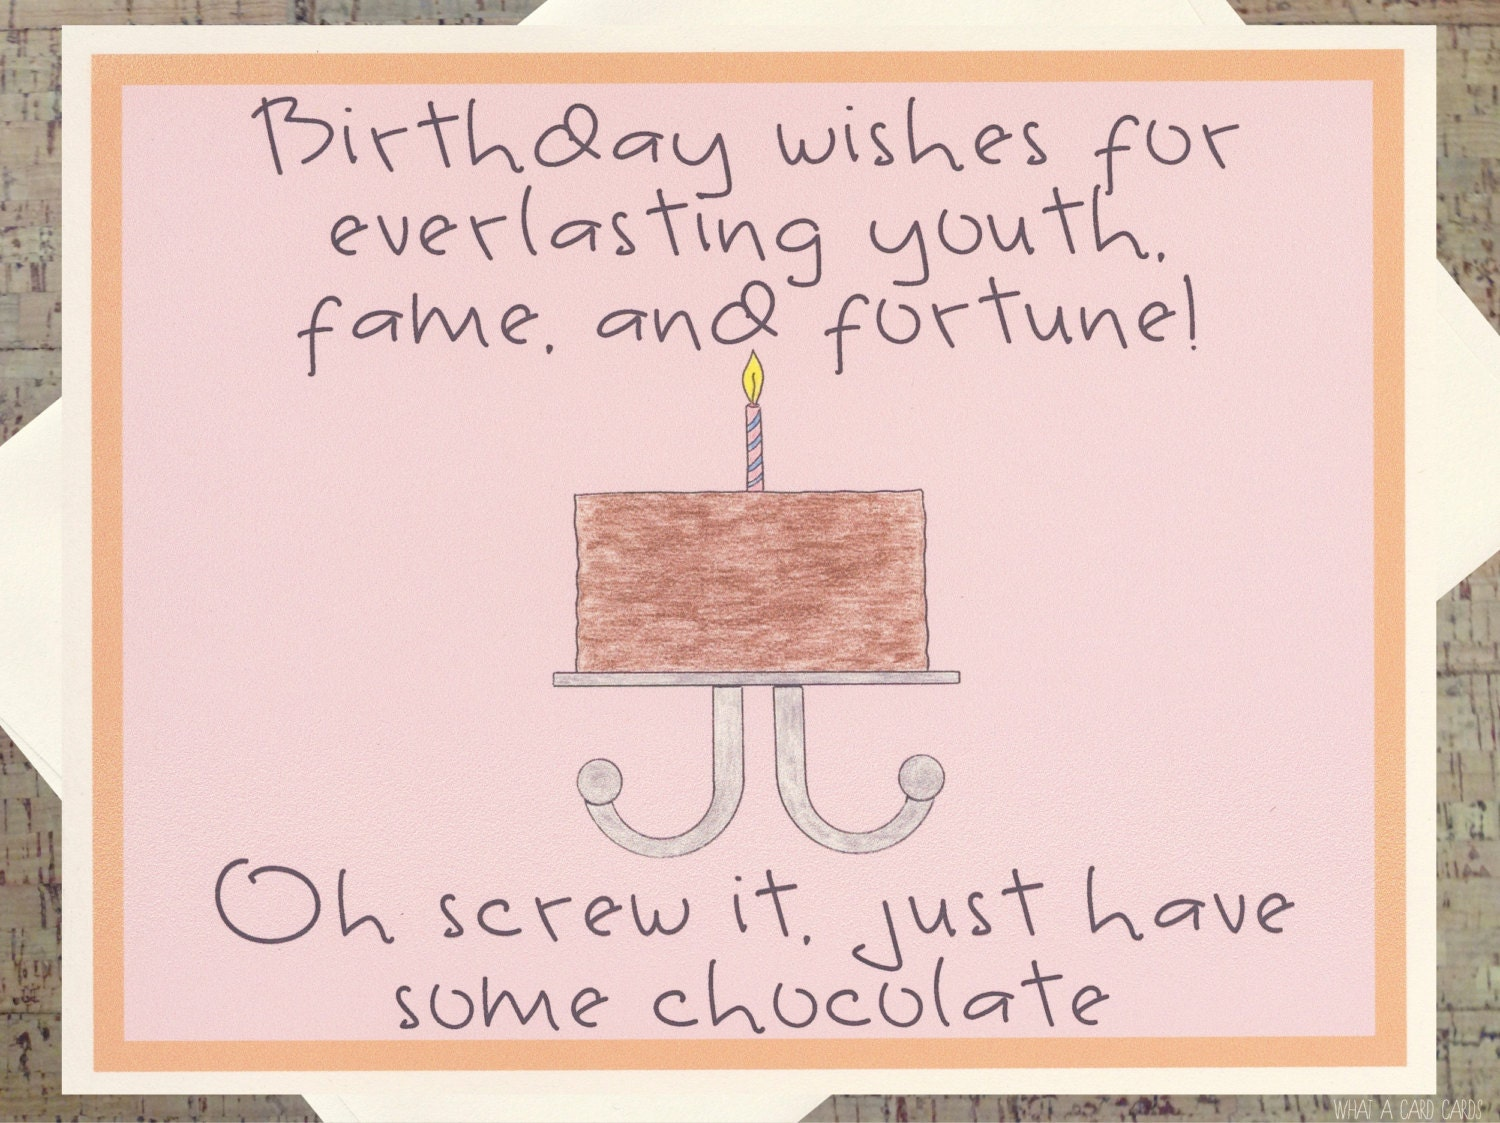 Funny Birthday Card Birthday Cake Card Chocolate Card – Friend Birthday Card Messages